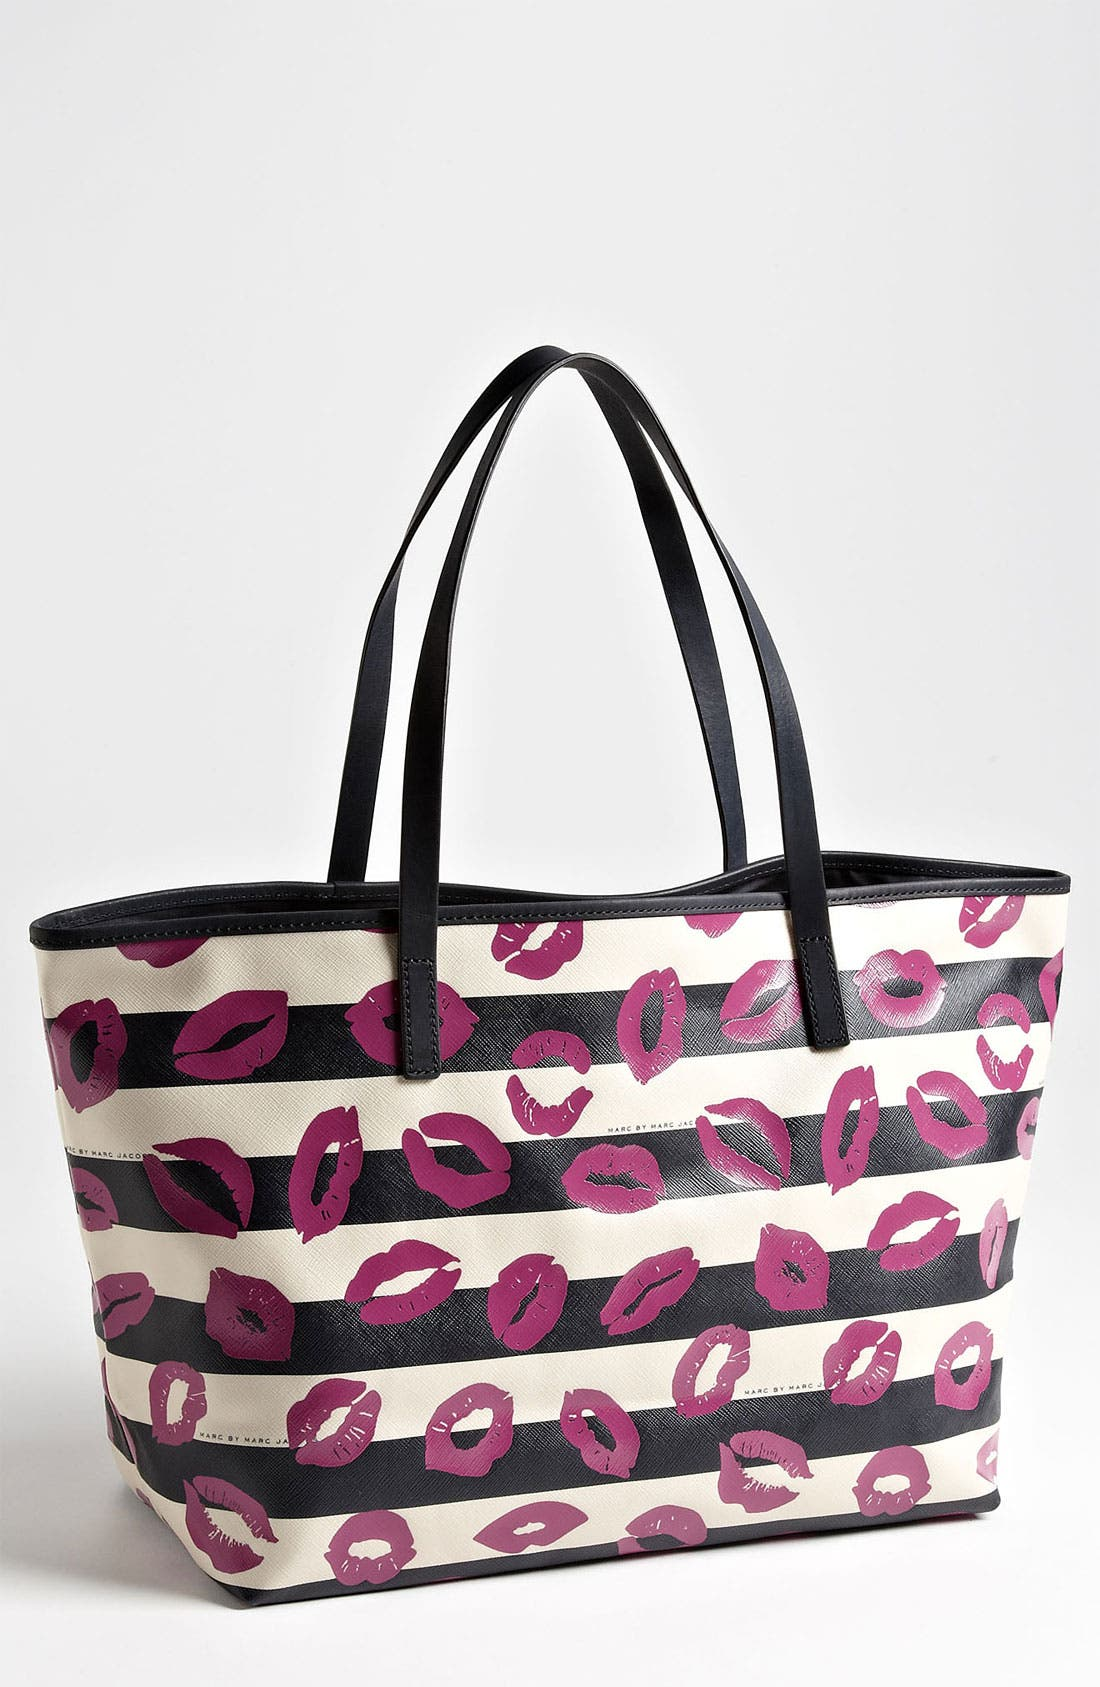 Main Image - MARC BY MARC JACOBS 'Eazy' Tote